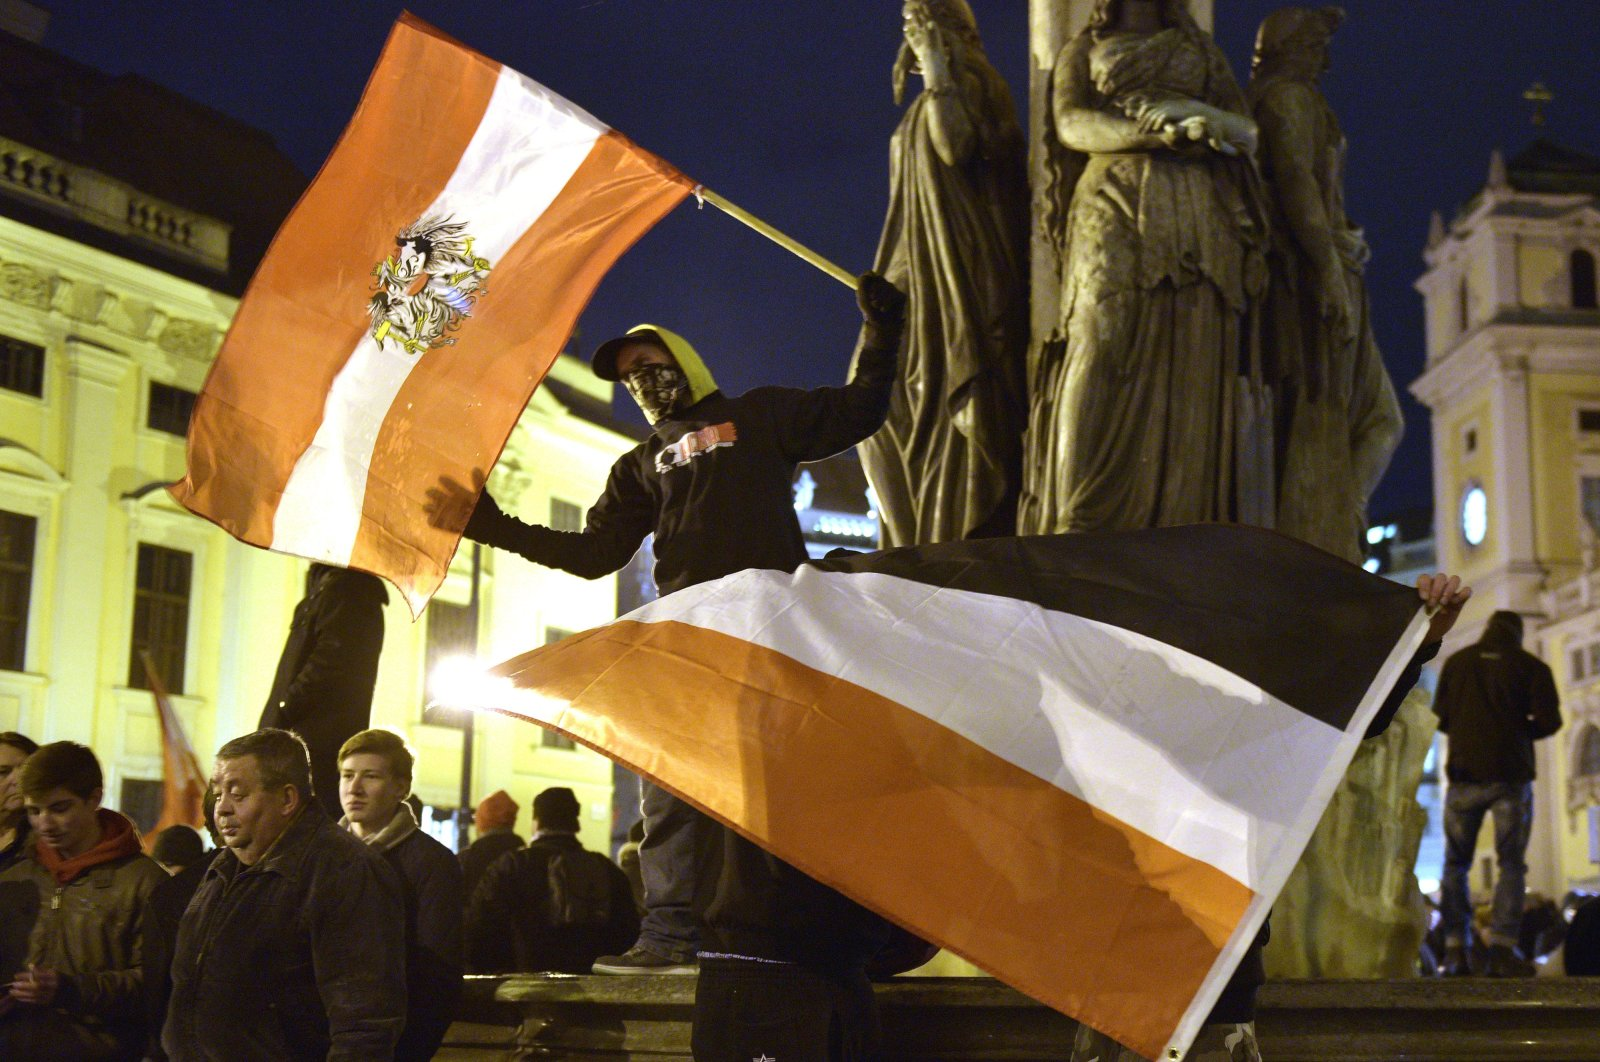 Demonstrators wave flags and show banners during a rally of the group Patriotic Europeans against Muslims, Vienna, Austria, Feb. 2, 2015. (AP Photo)